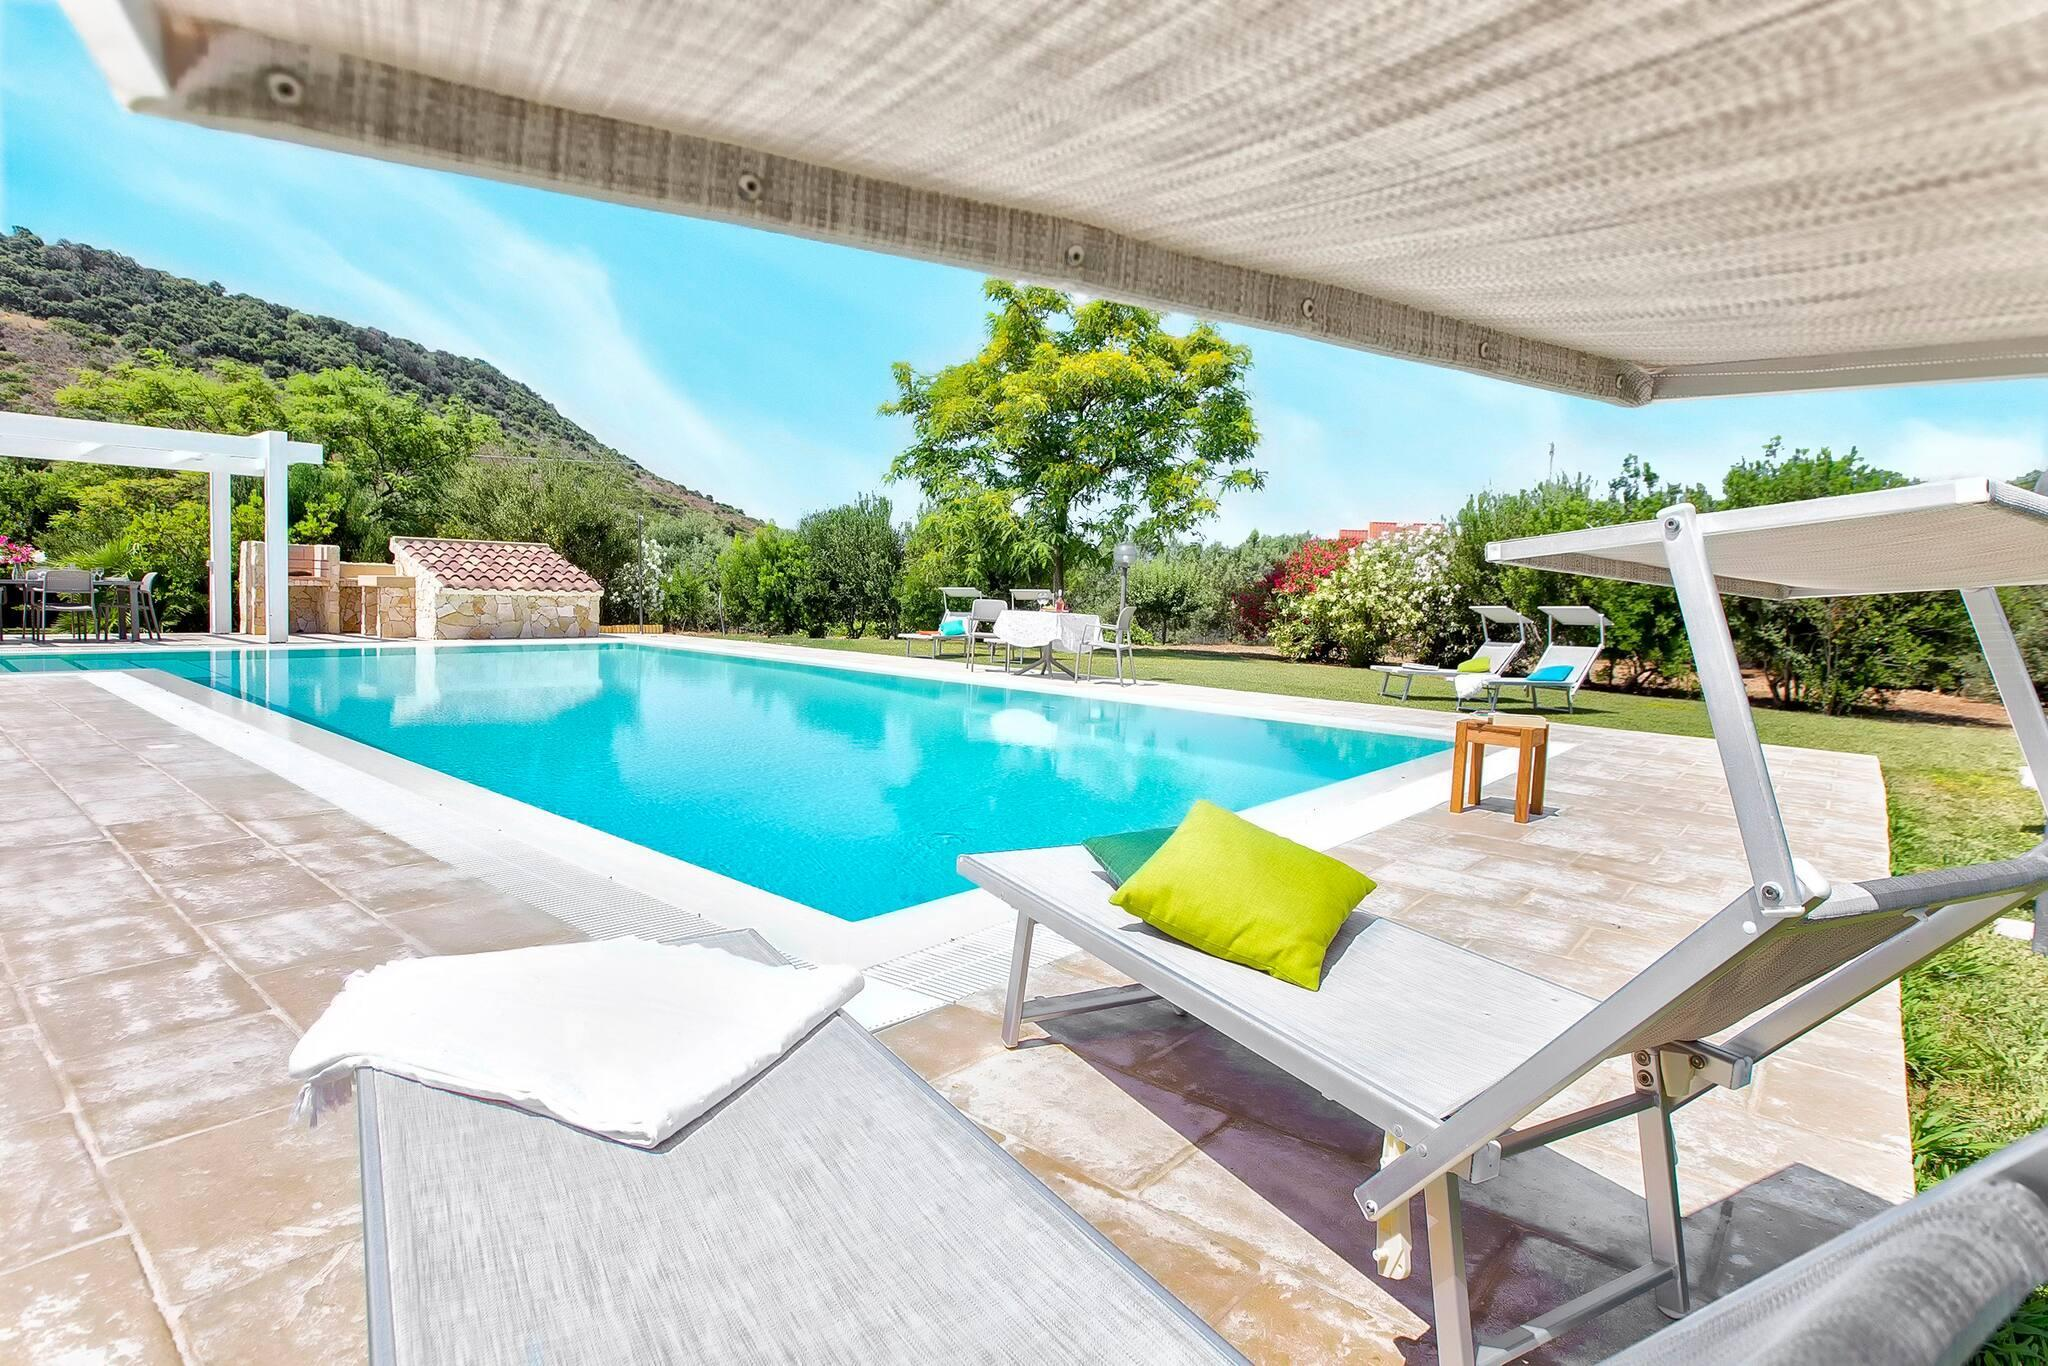 Alghero, Villa Laura with swimming pool for 12 people - Luxury and privacy